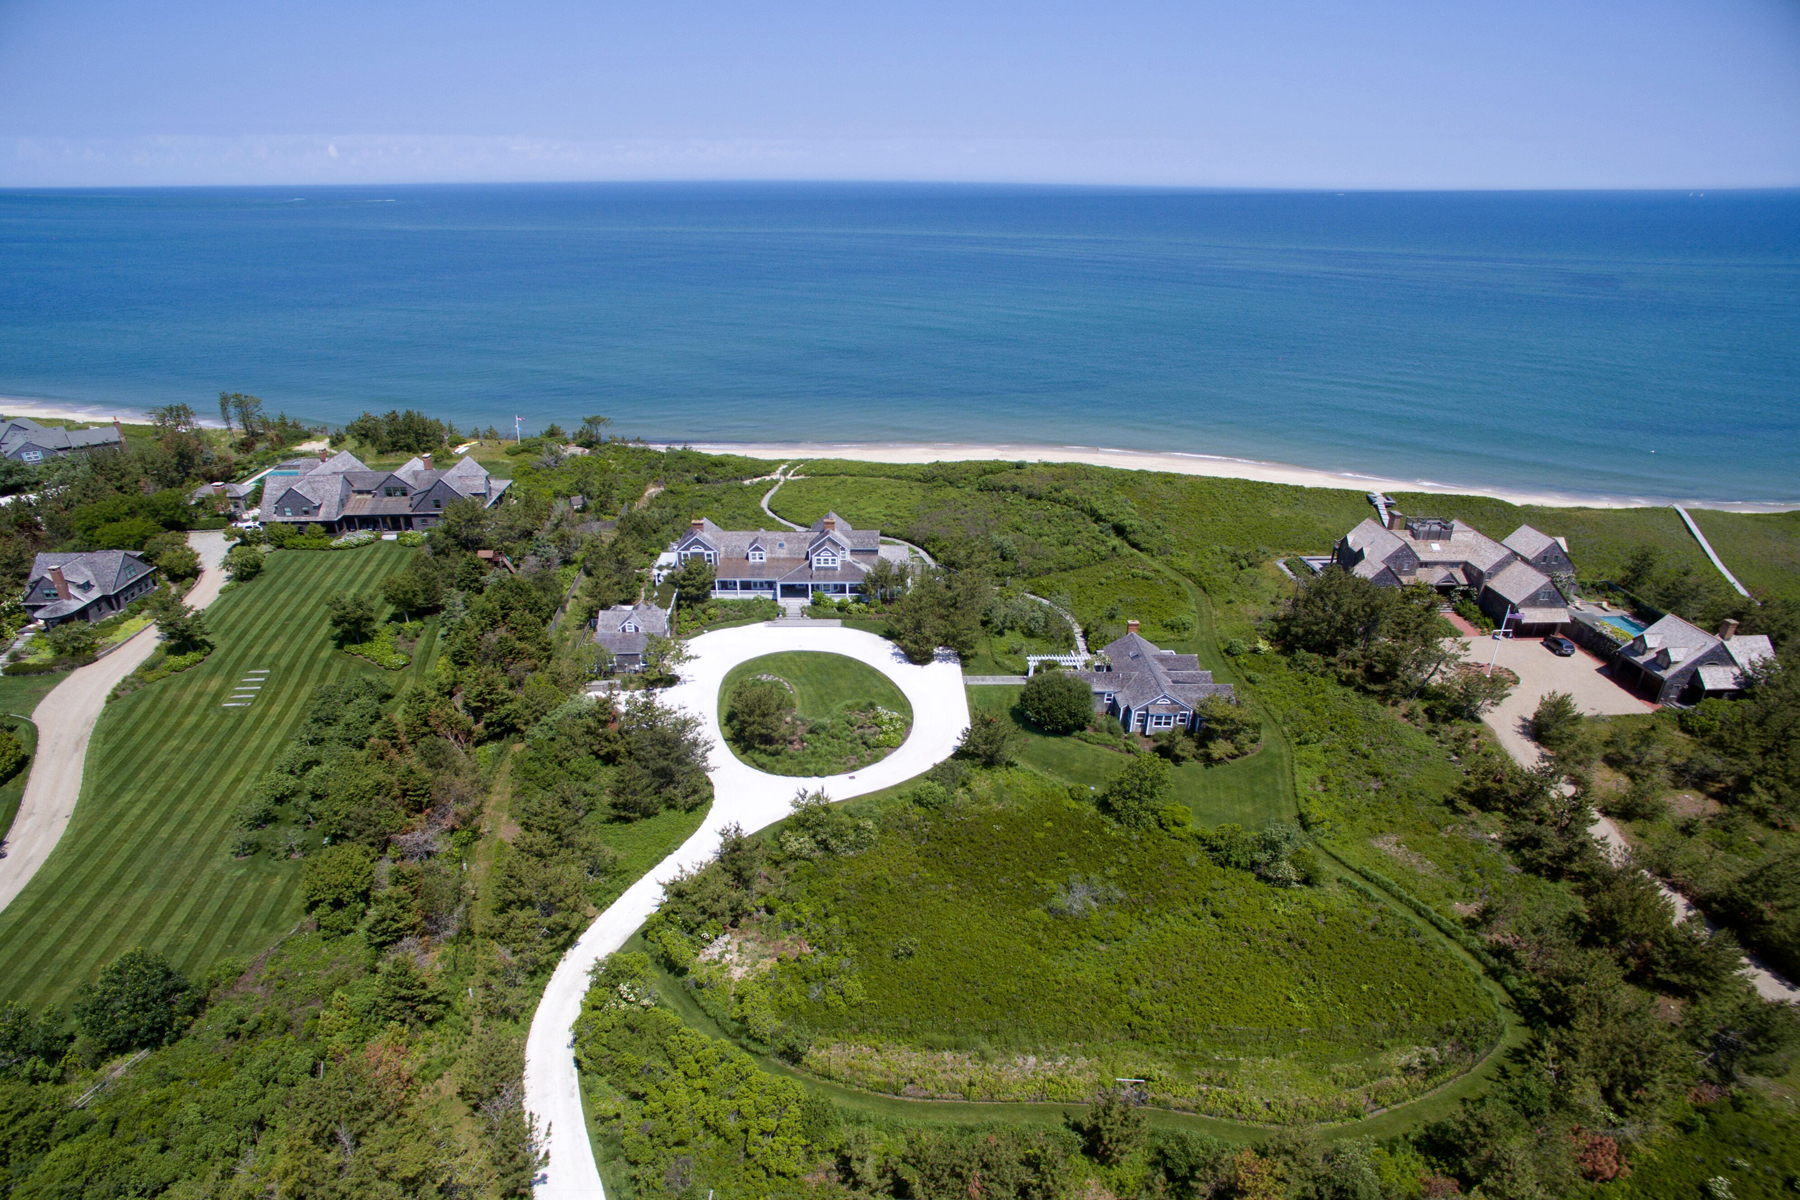 Villa per Vendita alle ore Spectacular Oceanfront Dionis! 119 Eel Point Road 119 R Eel Point Road Nantucket, Massachusetts, 02554 Stati Uniti